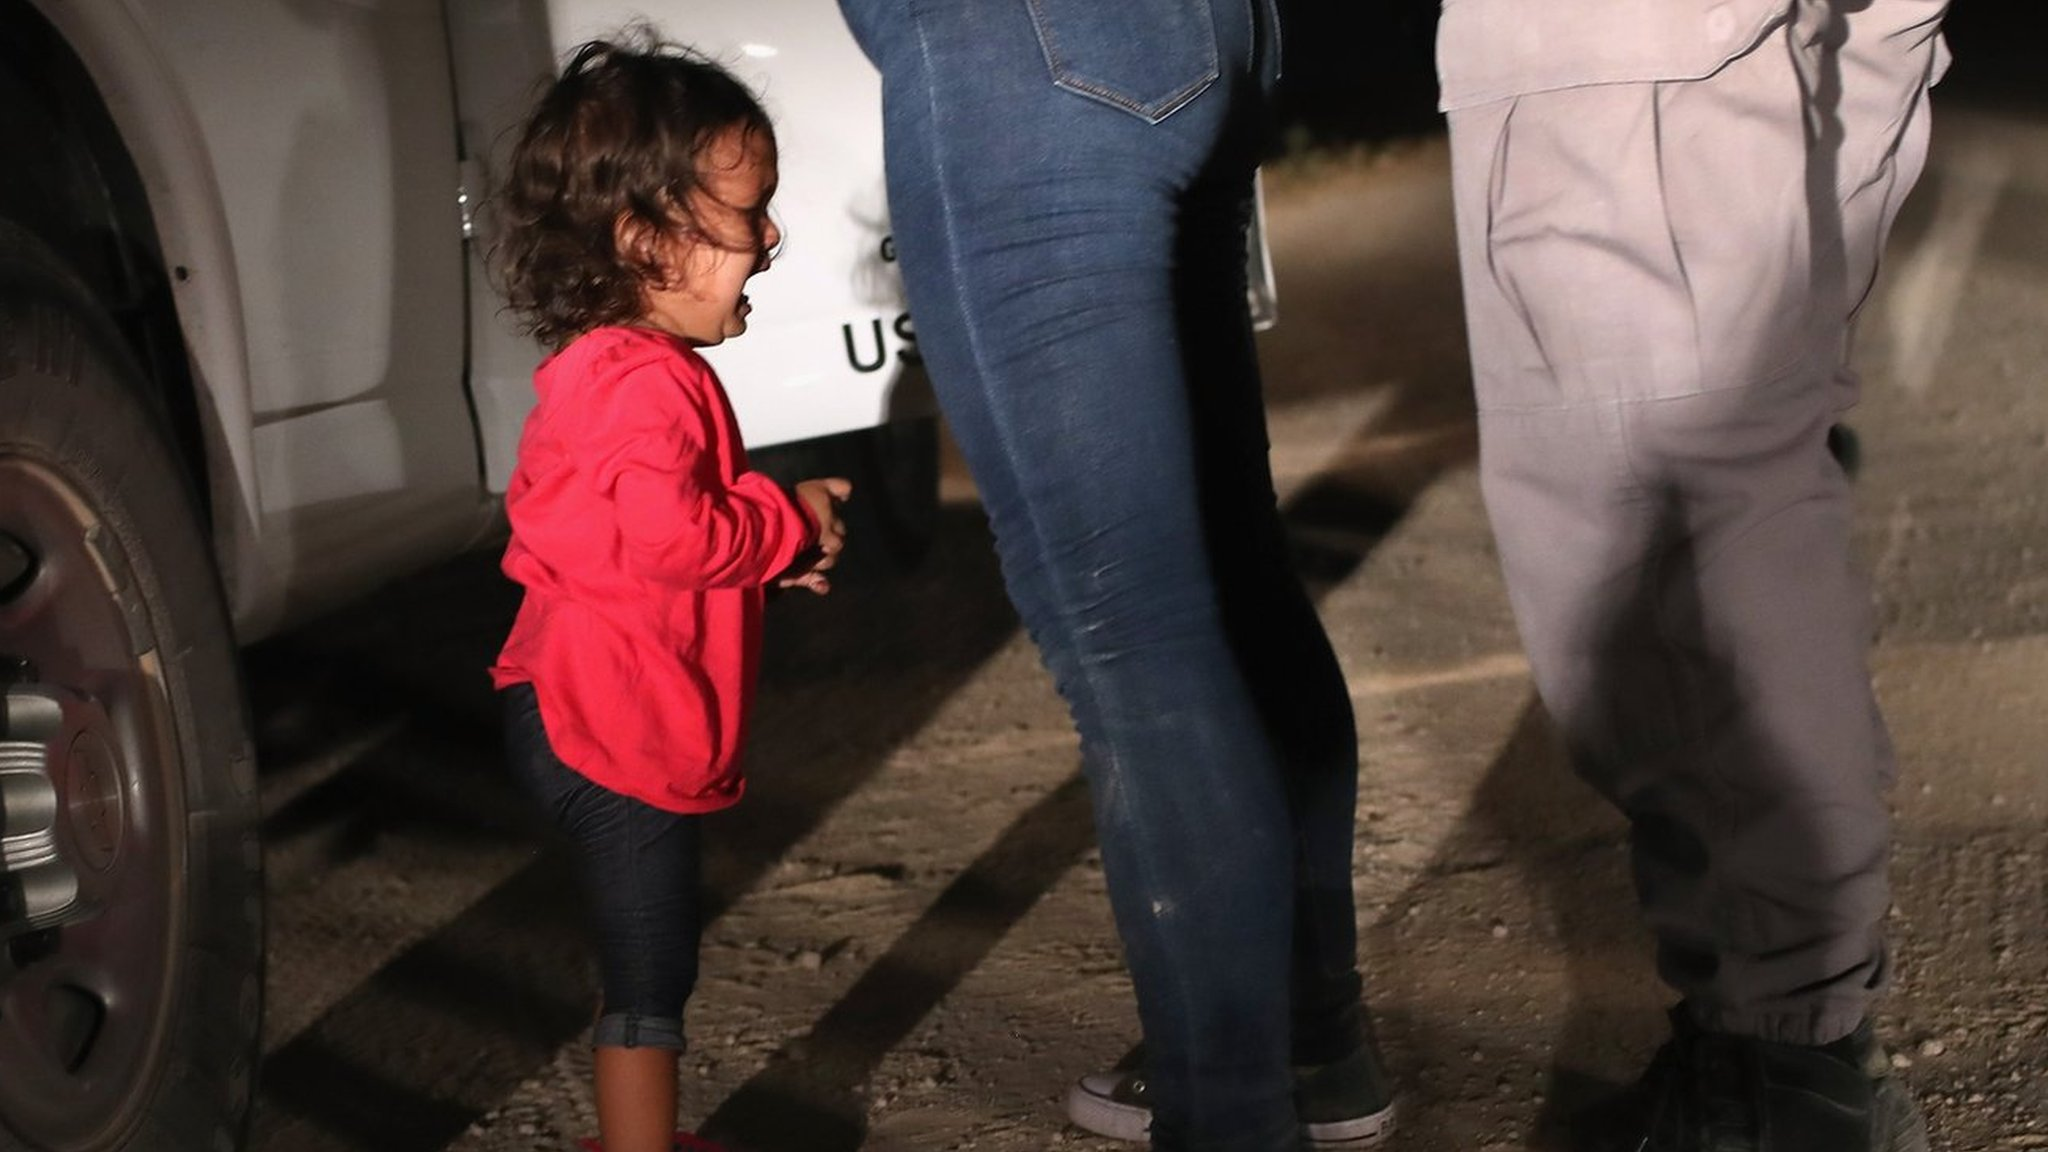 US child migrants: Melania calls for end to Trump's separation policy